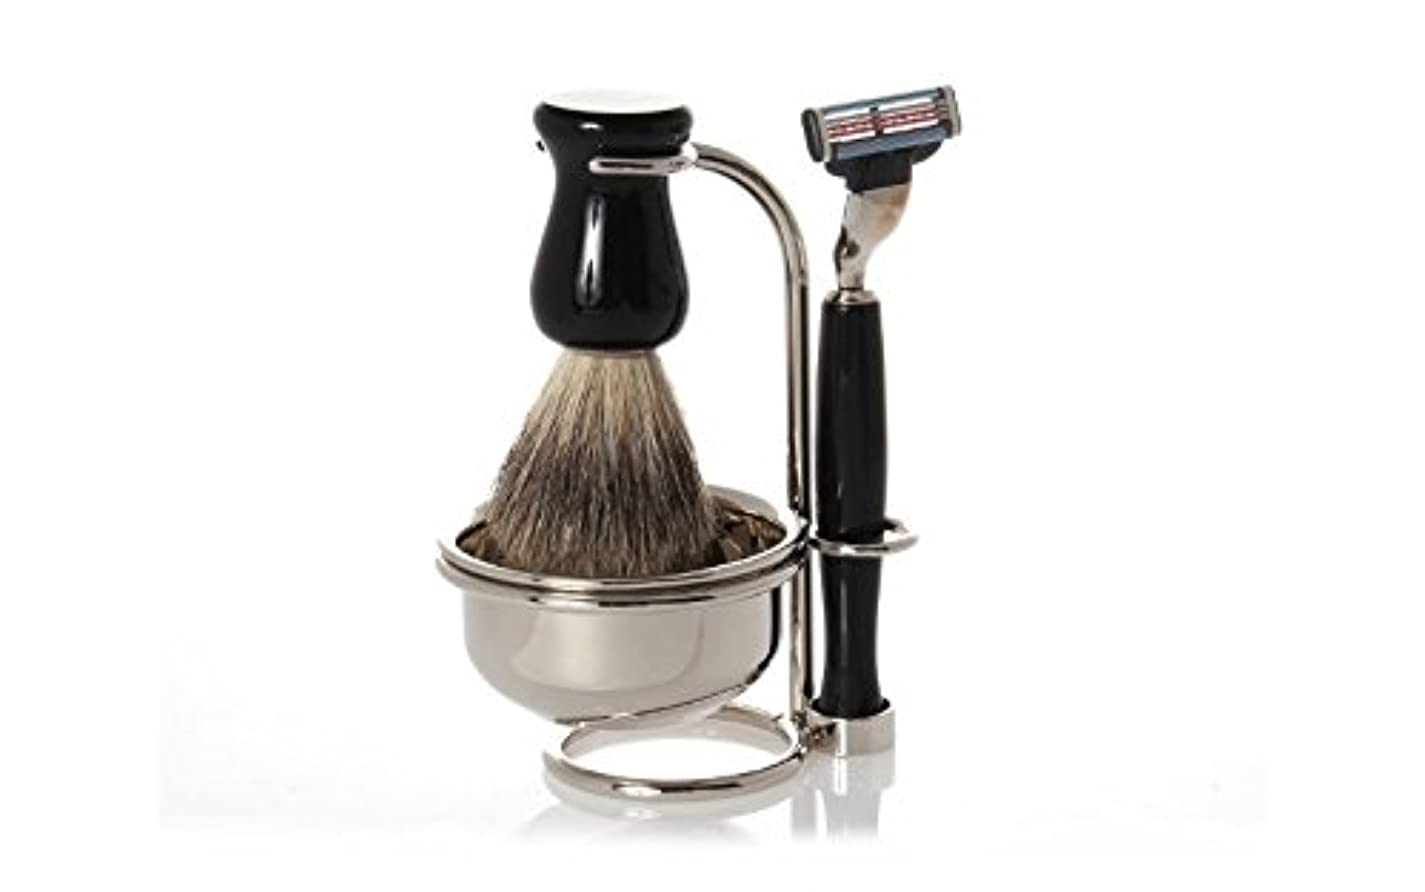 雰囲気四半期広範囲にErbe Shaving Set, Gillette Mach3 Razor, Shaving Brush, Soap Bowl, Stand, black